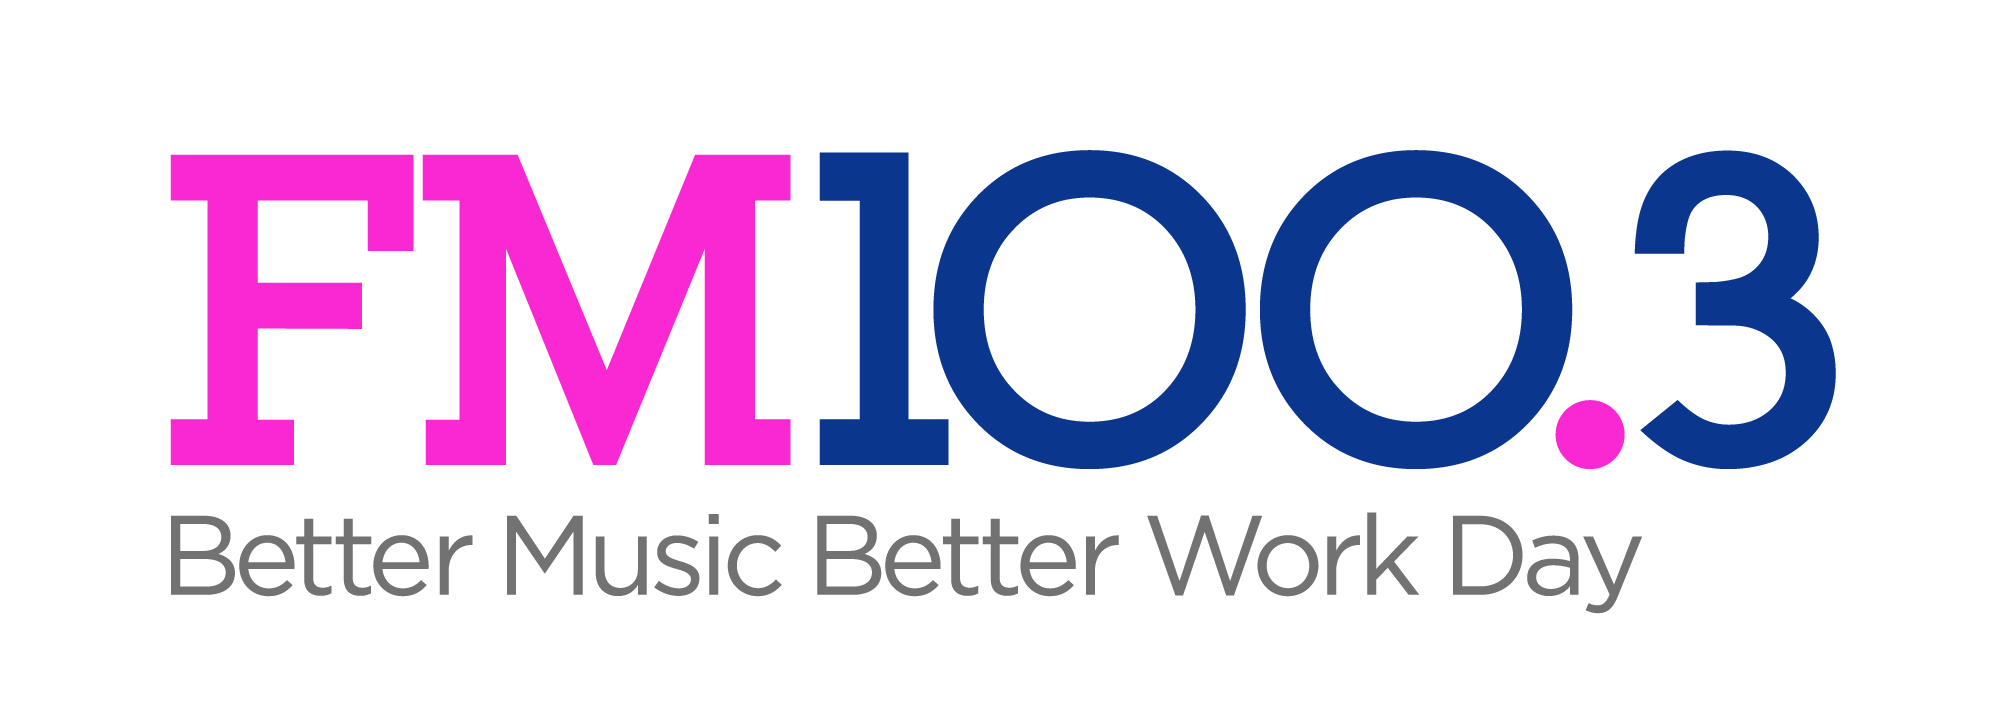 FM 100.3 Better Music Better Work Day